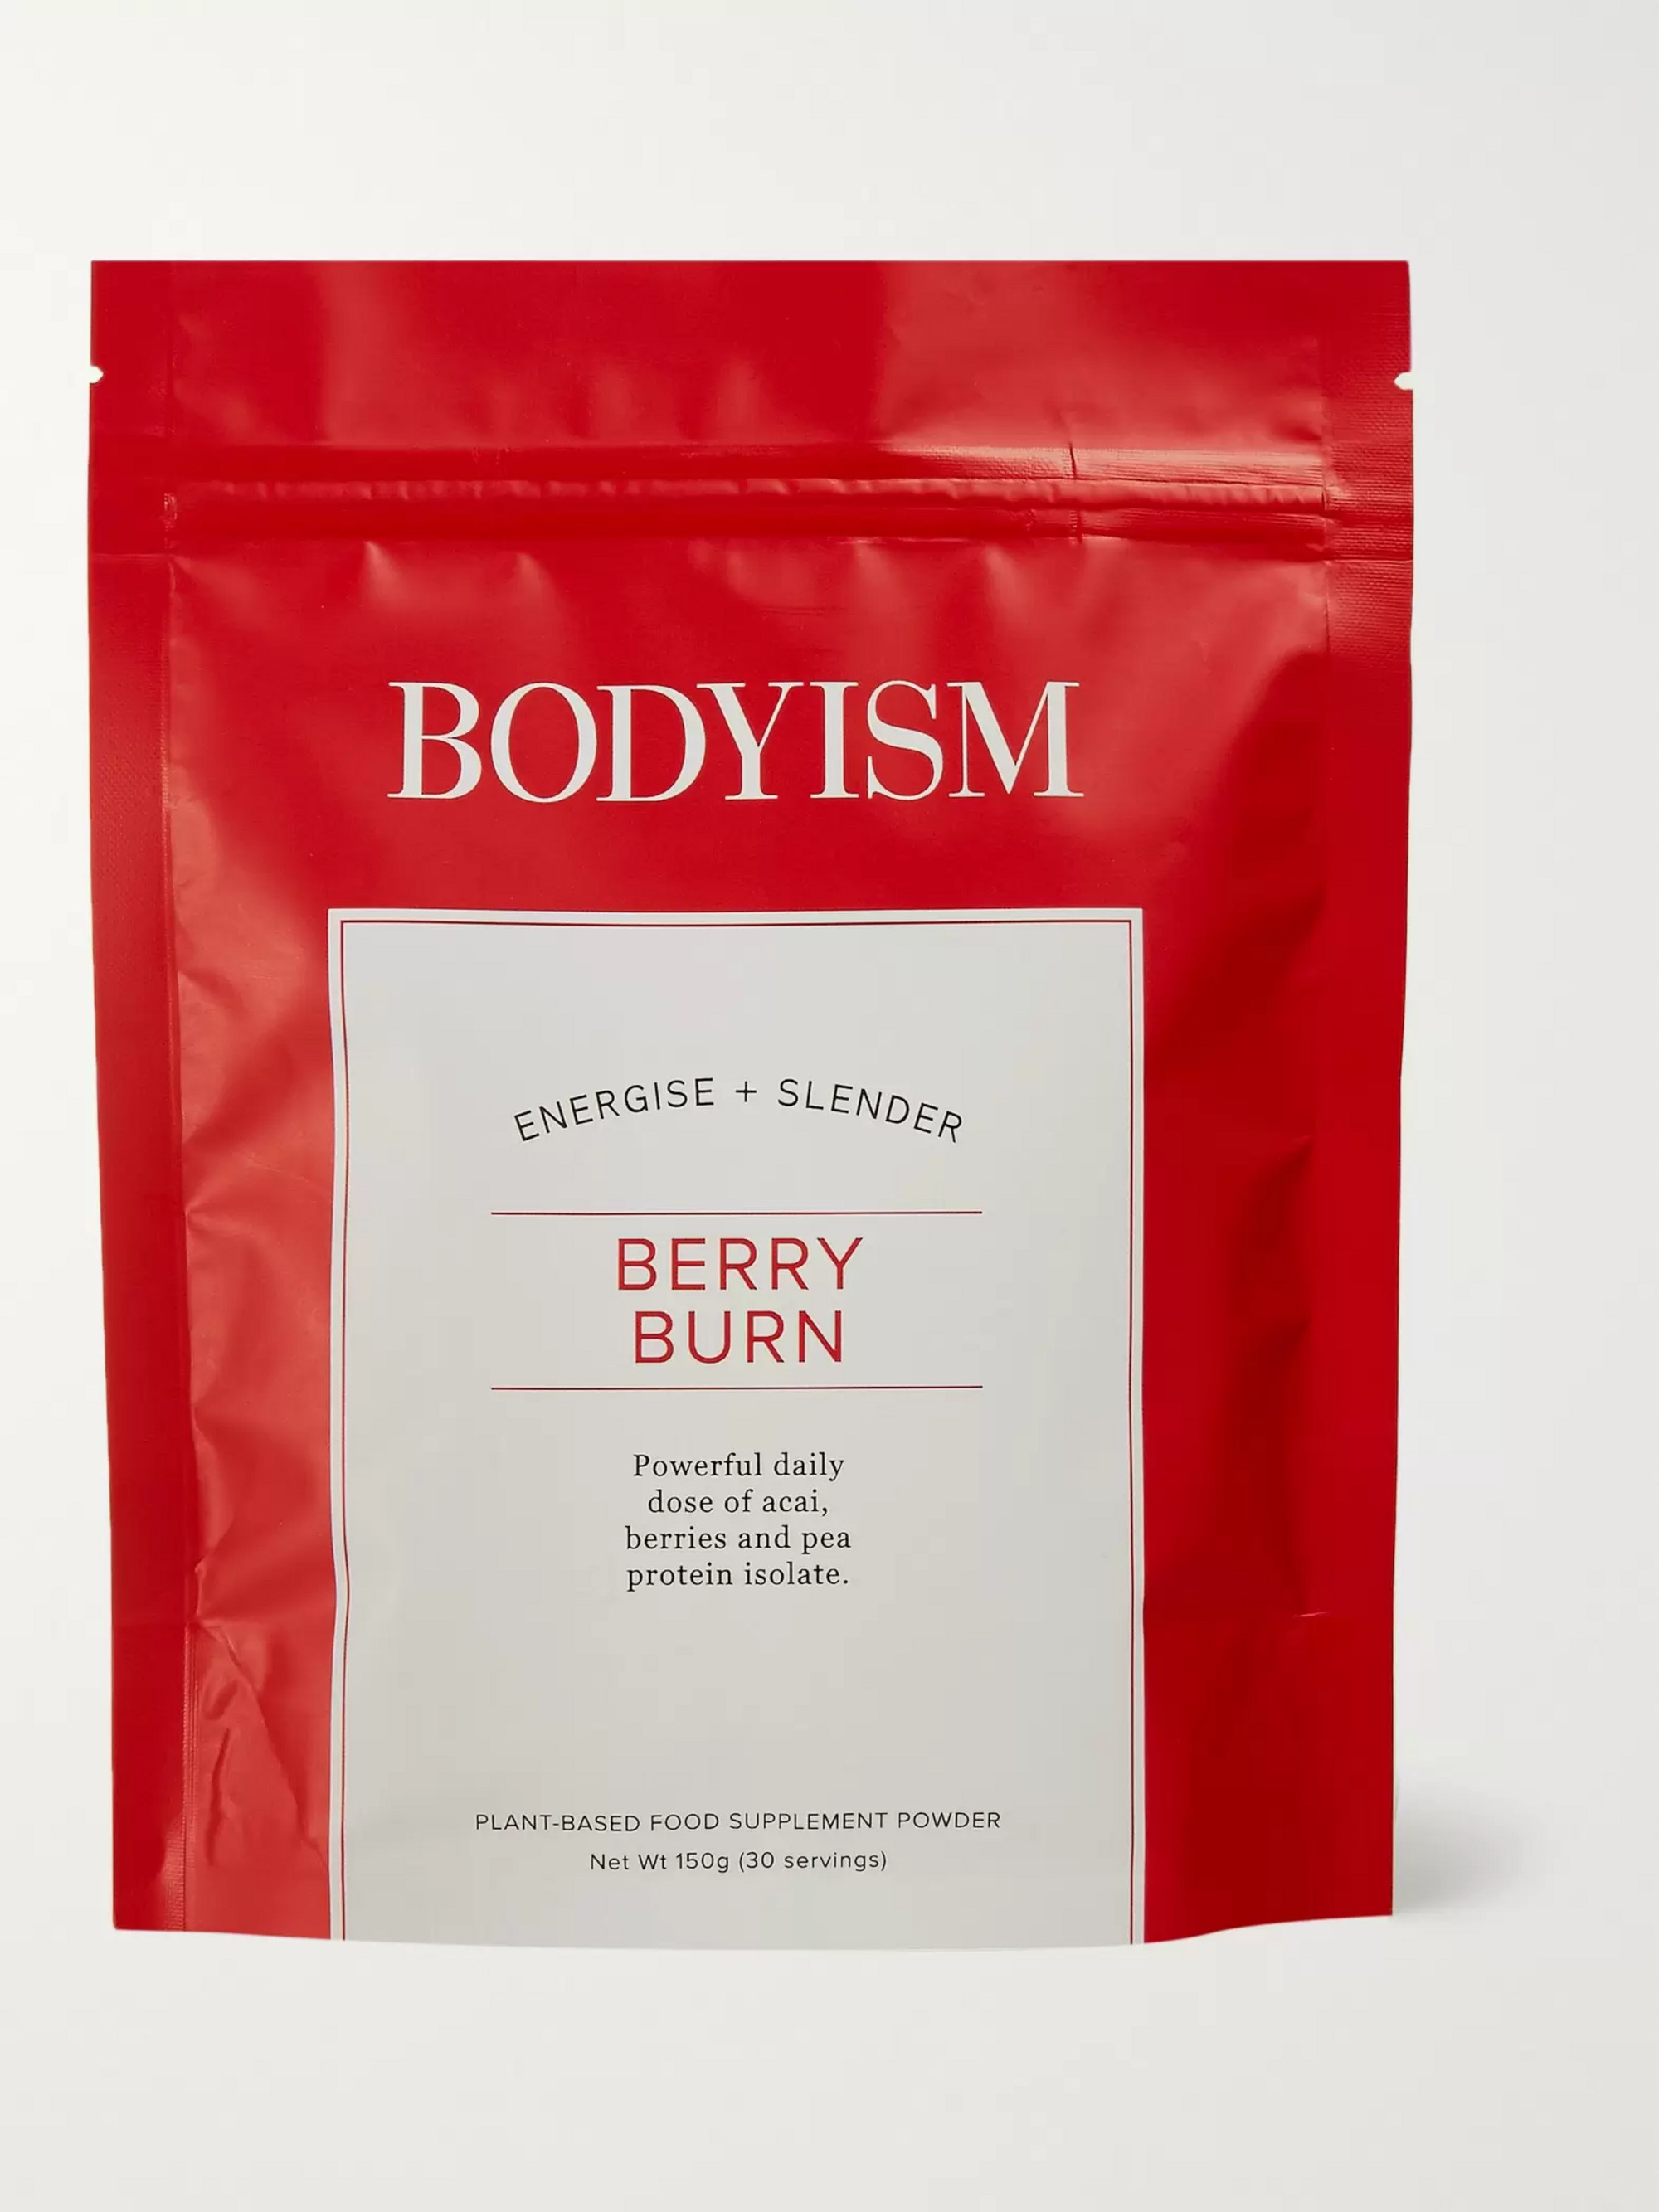 Bodyism Berry Burn Pre-Training Supplement, 150g